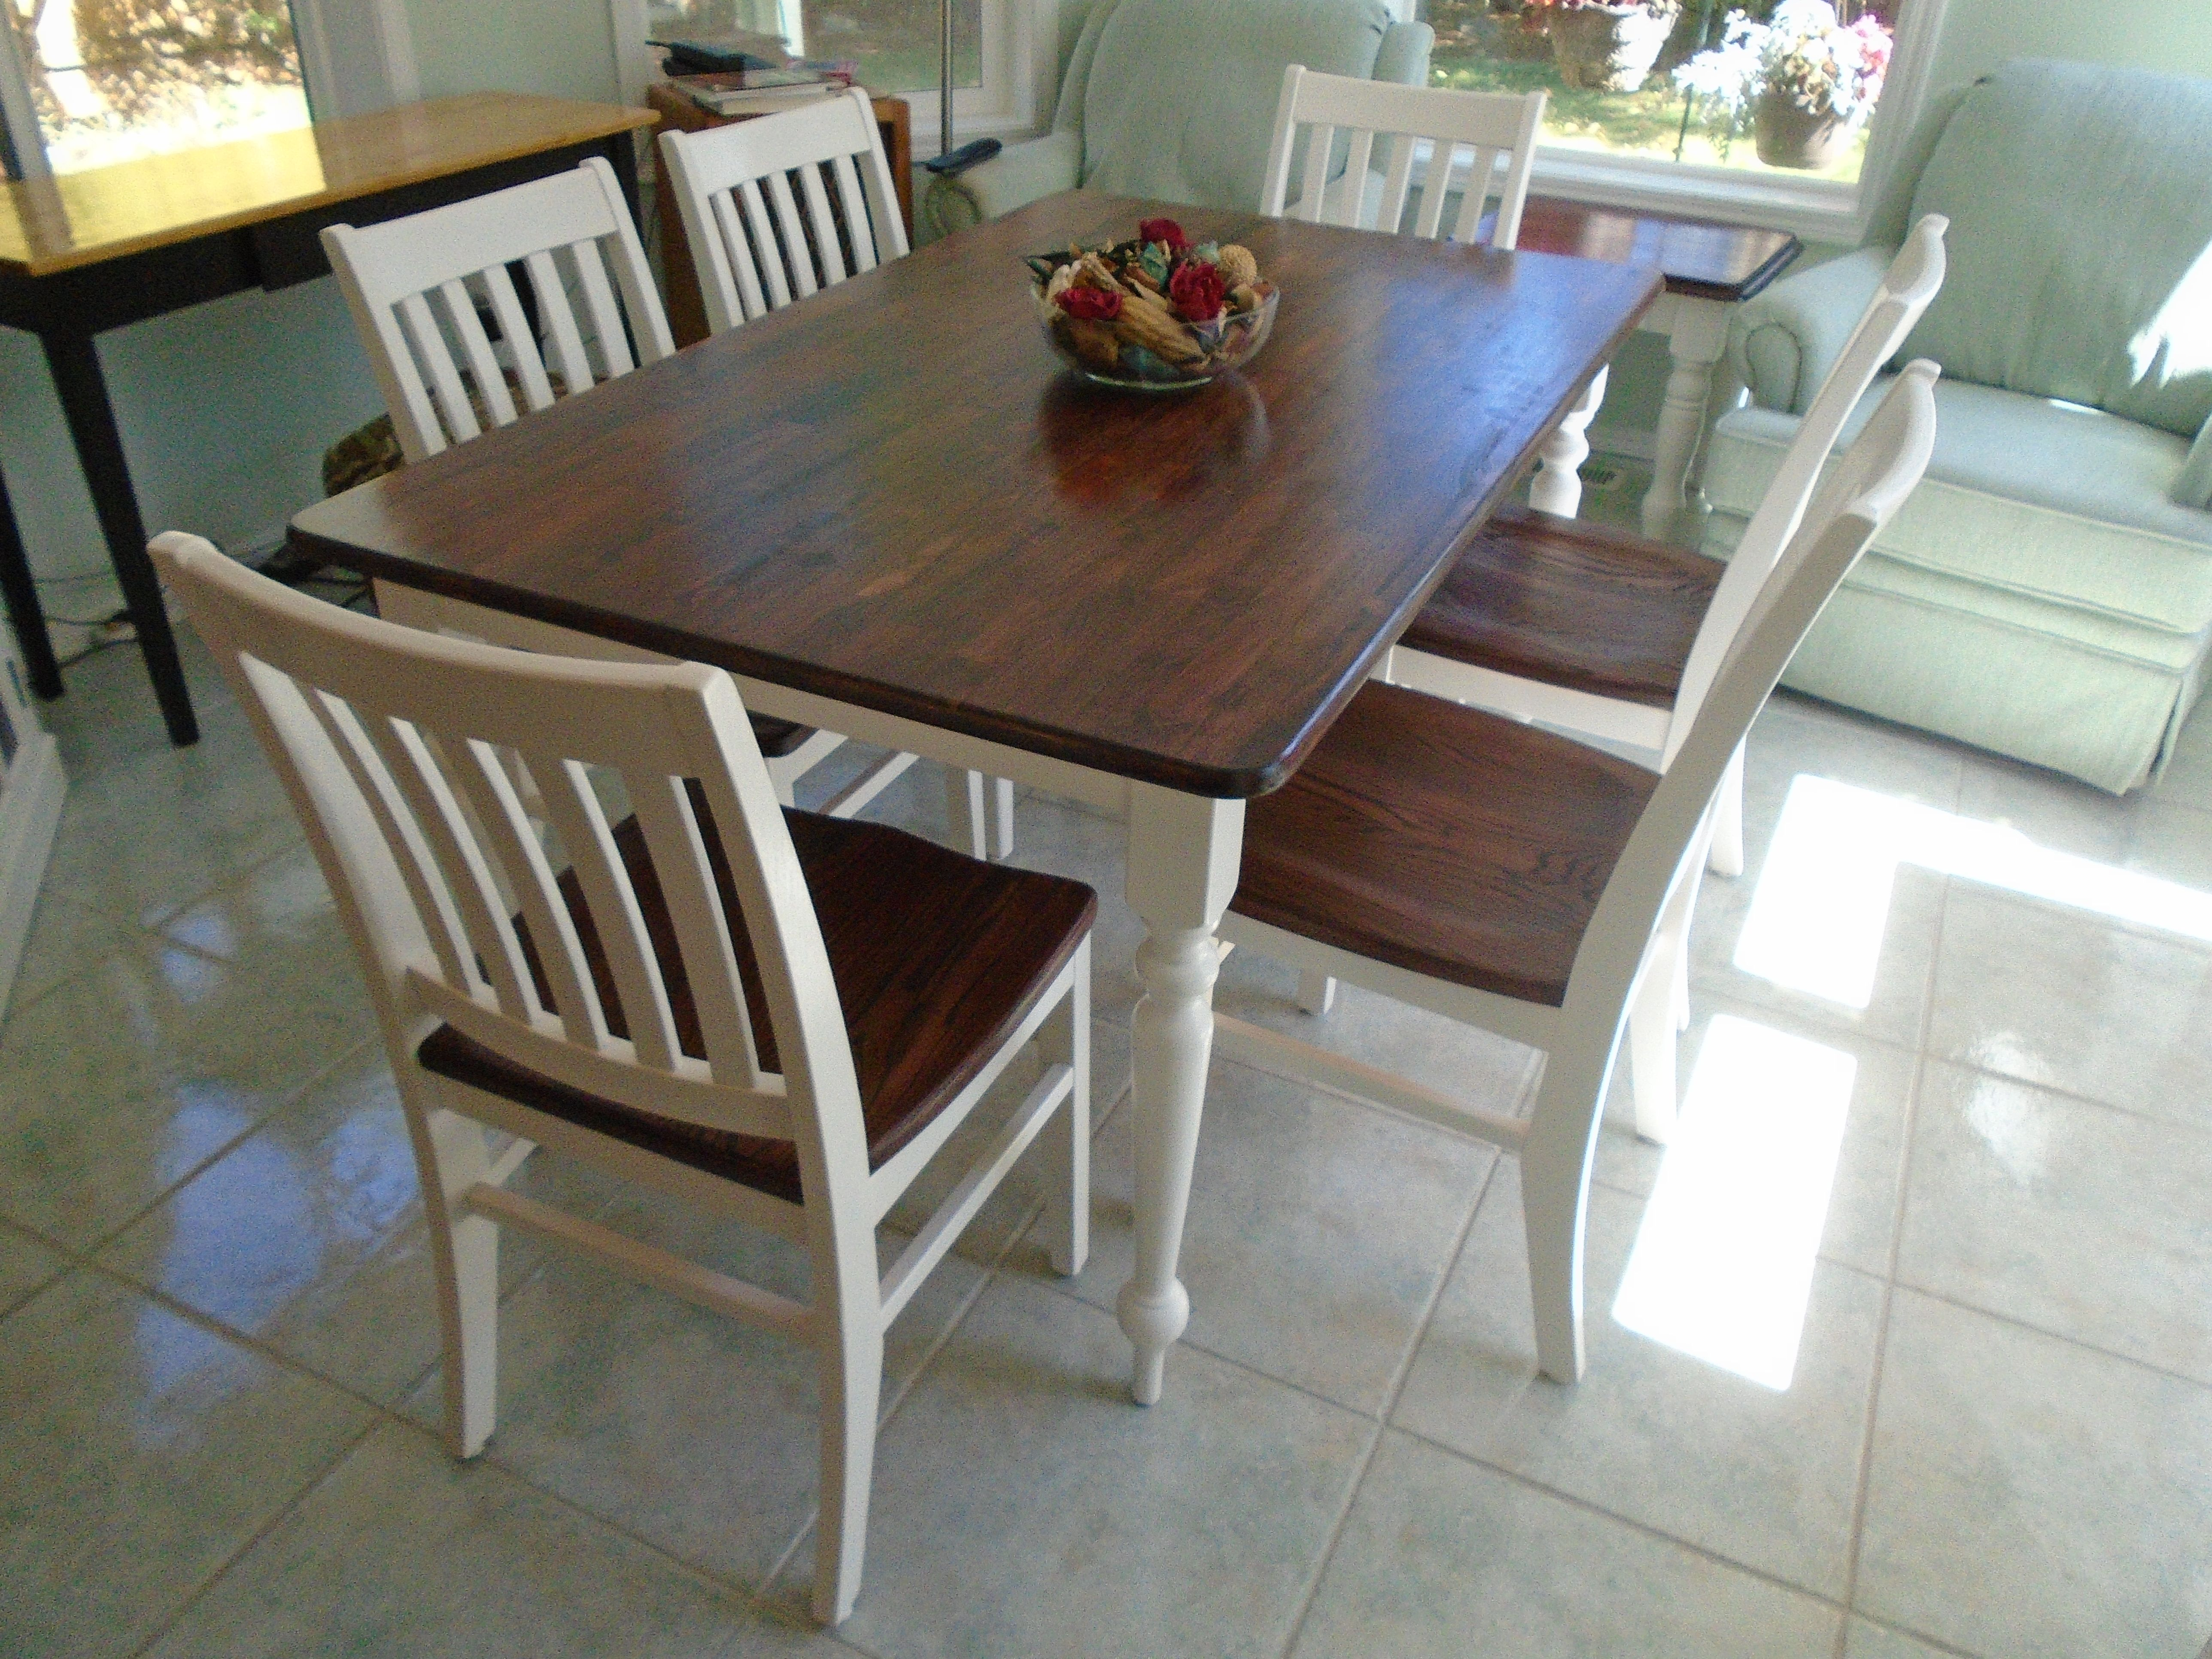 farmhouse kitchen chairs cabinet colors rustic table brown stained top white painted